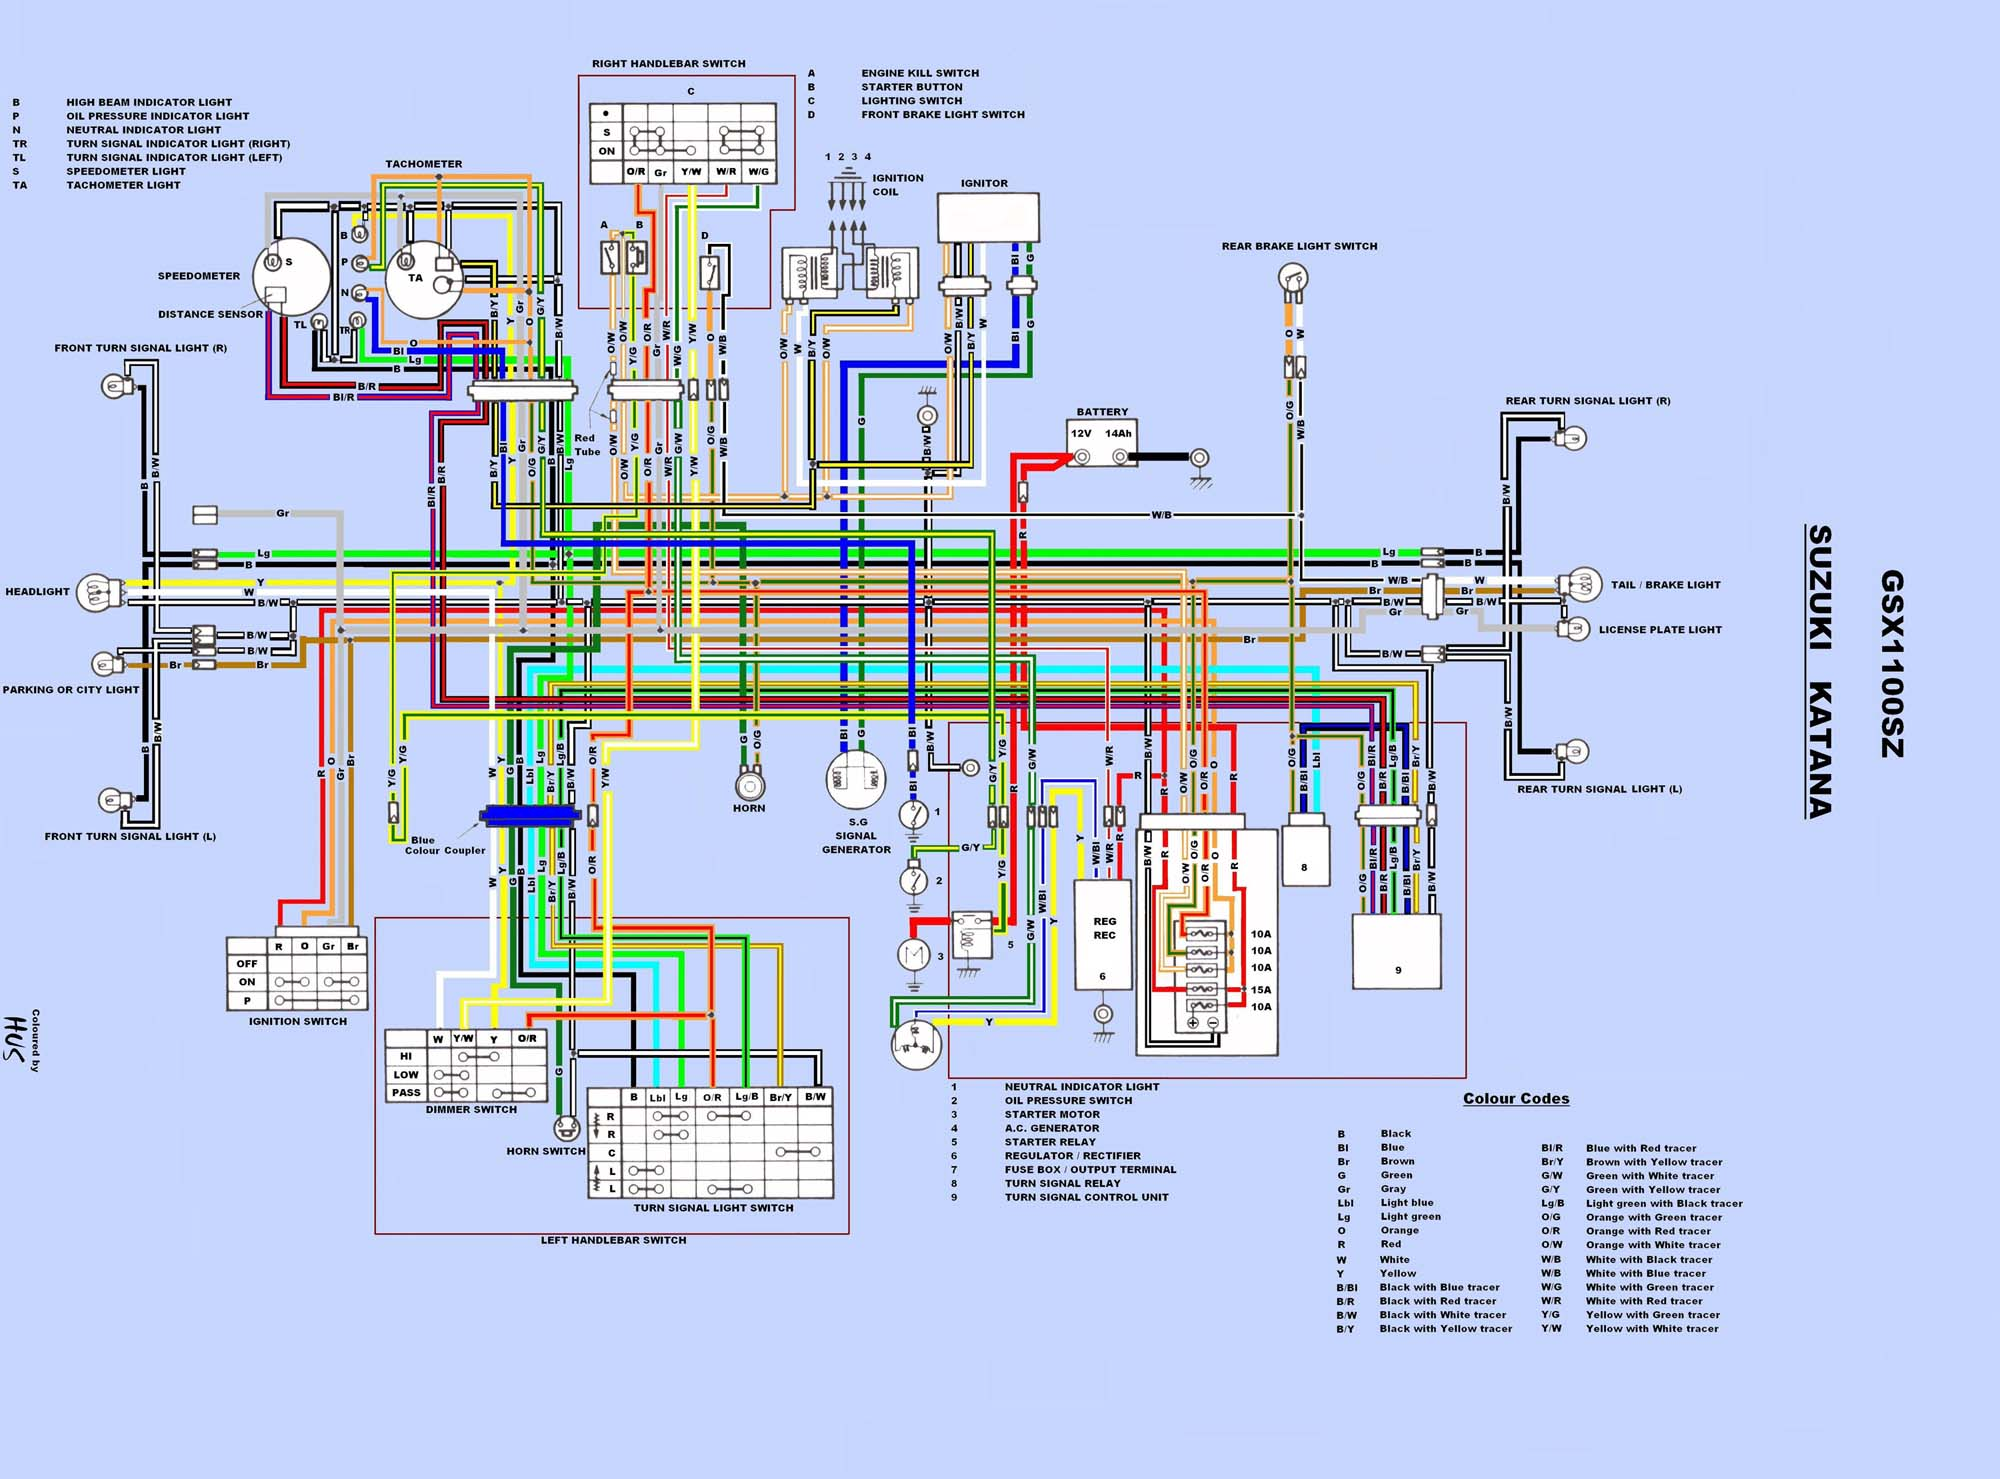 hight resolution of katana wiring suzuki katana 750 wiring harness katana wiring diagram